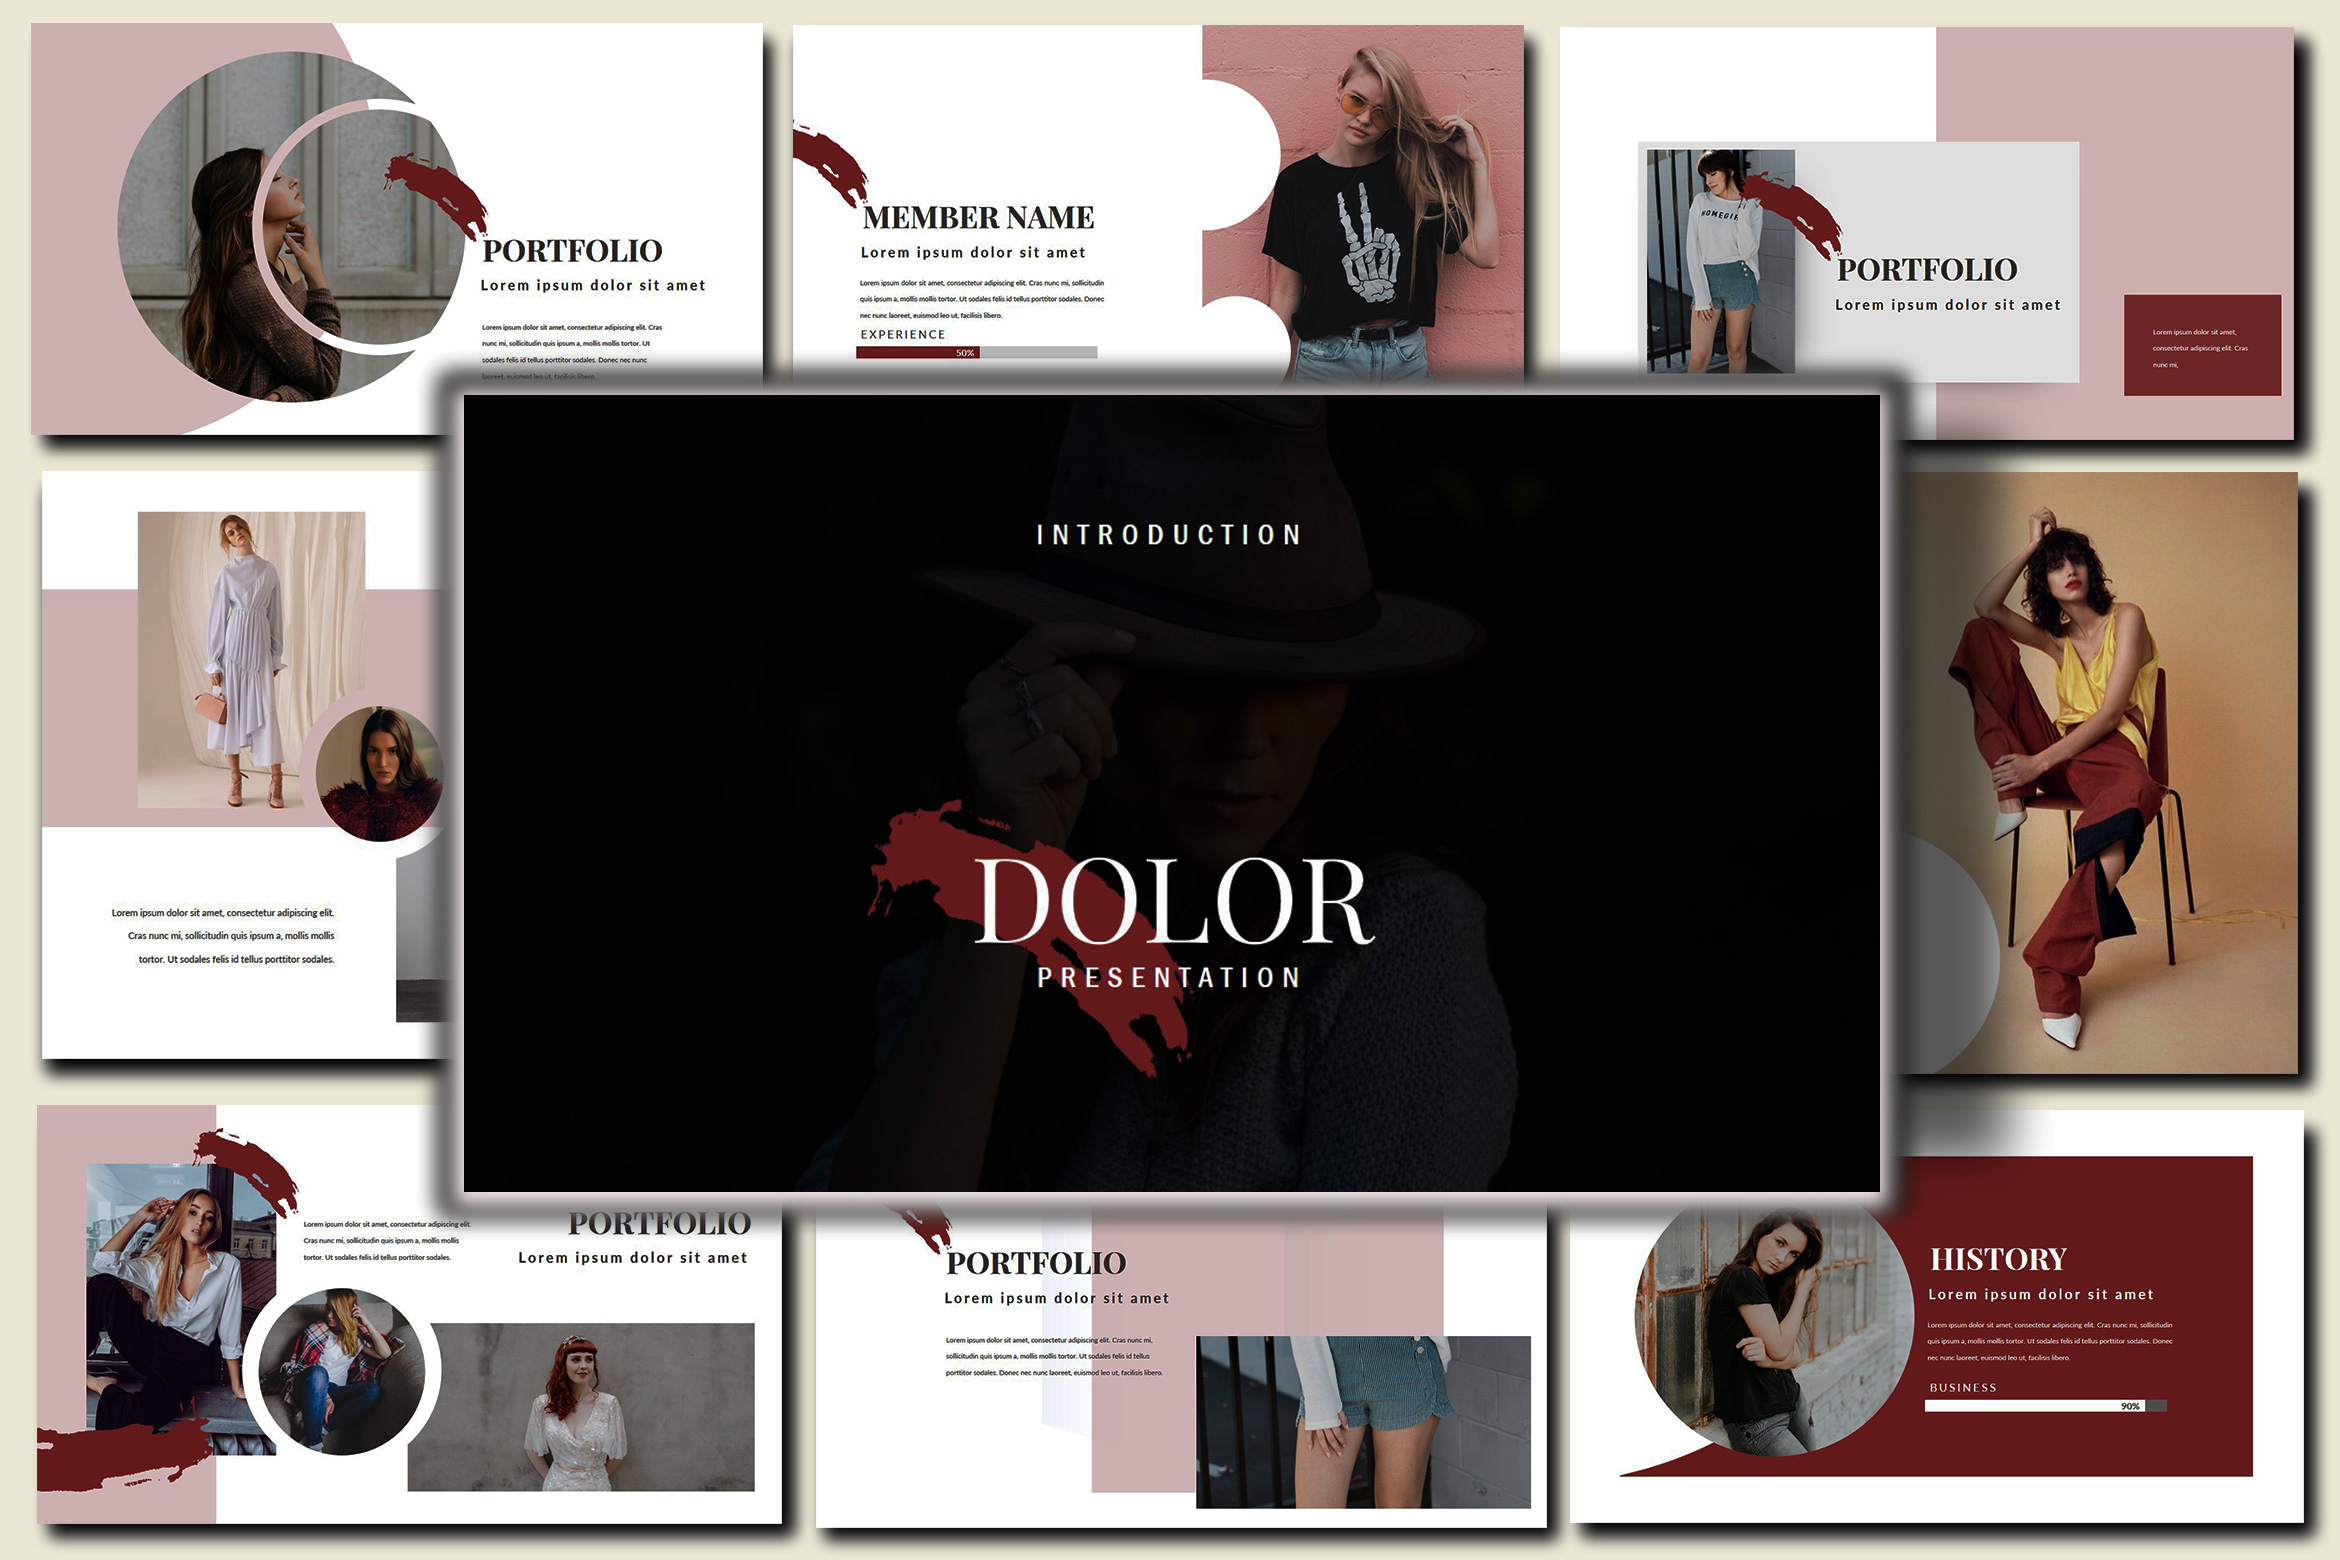 Dolor Stylish Google Slides Presentation example image 2